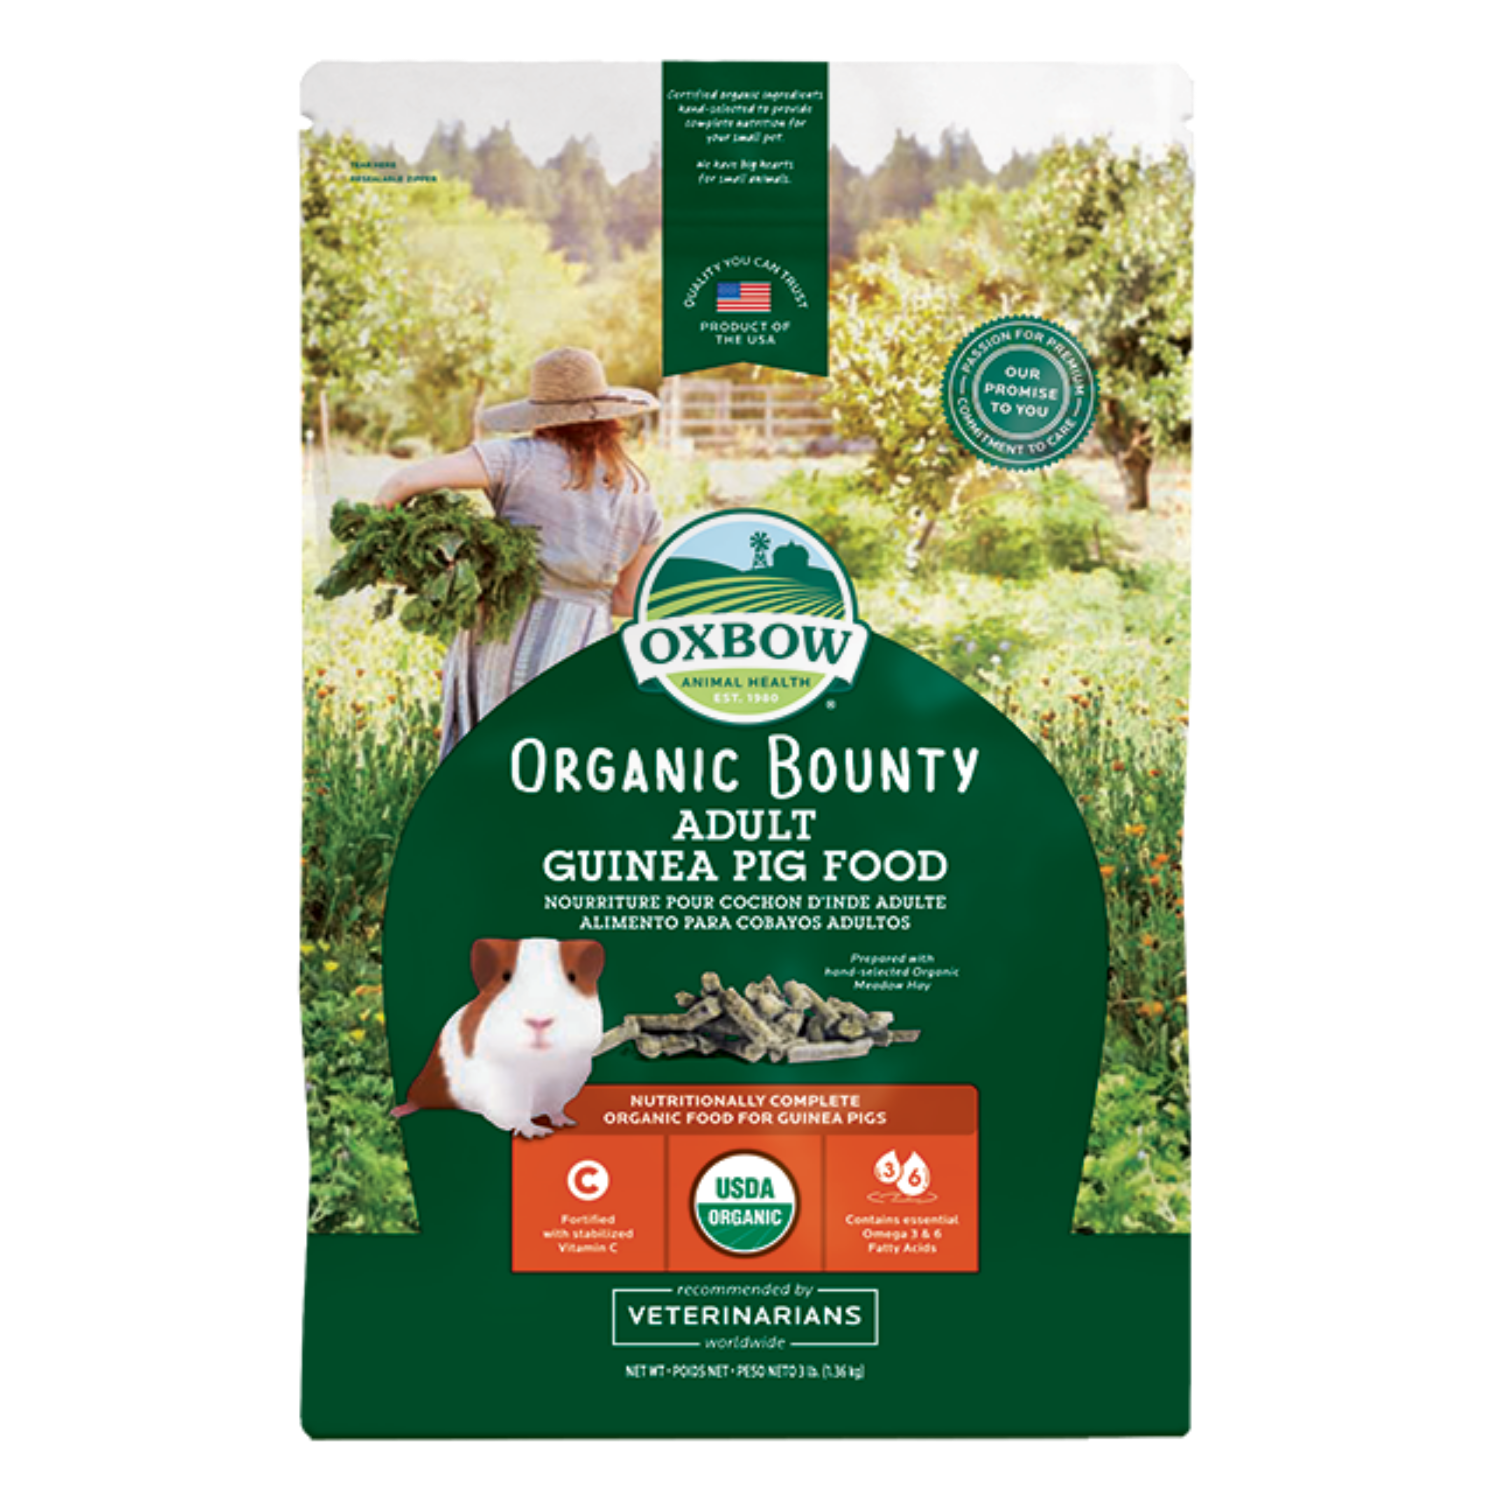 Oxbow Organic Bounty Adult Guinea Pig - 1.36kg